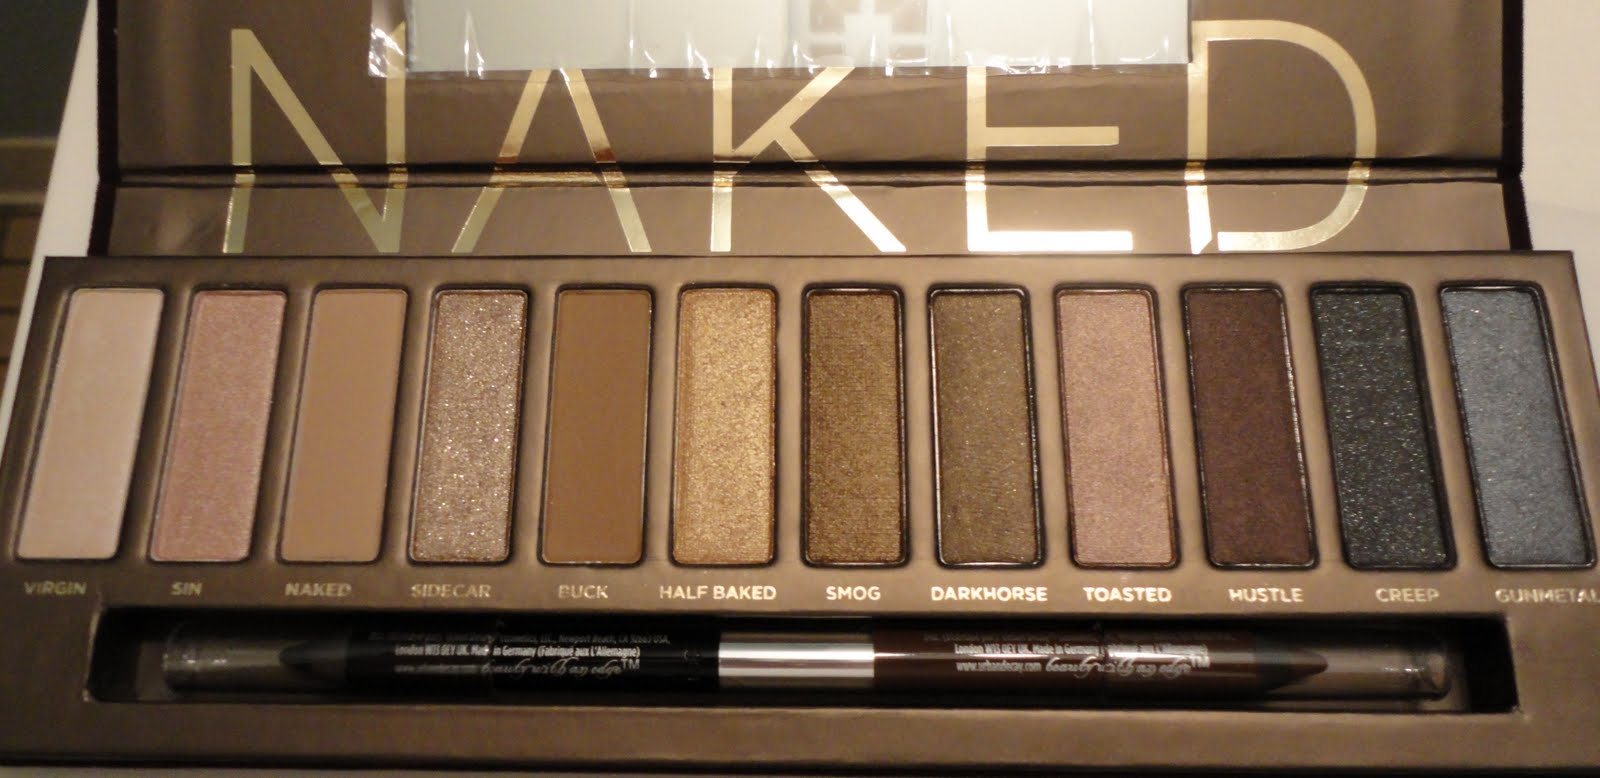 Never Enough Gloss Urban Decay Naked Palette Review-6822